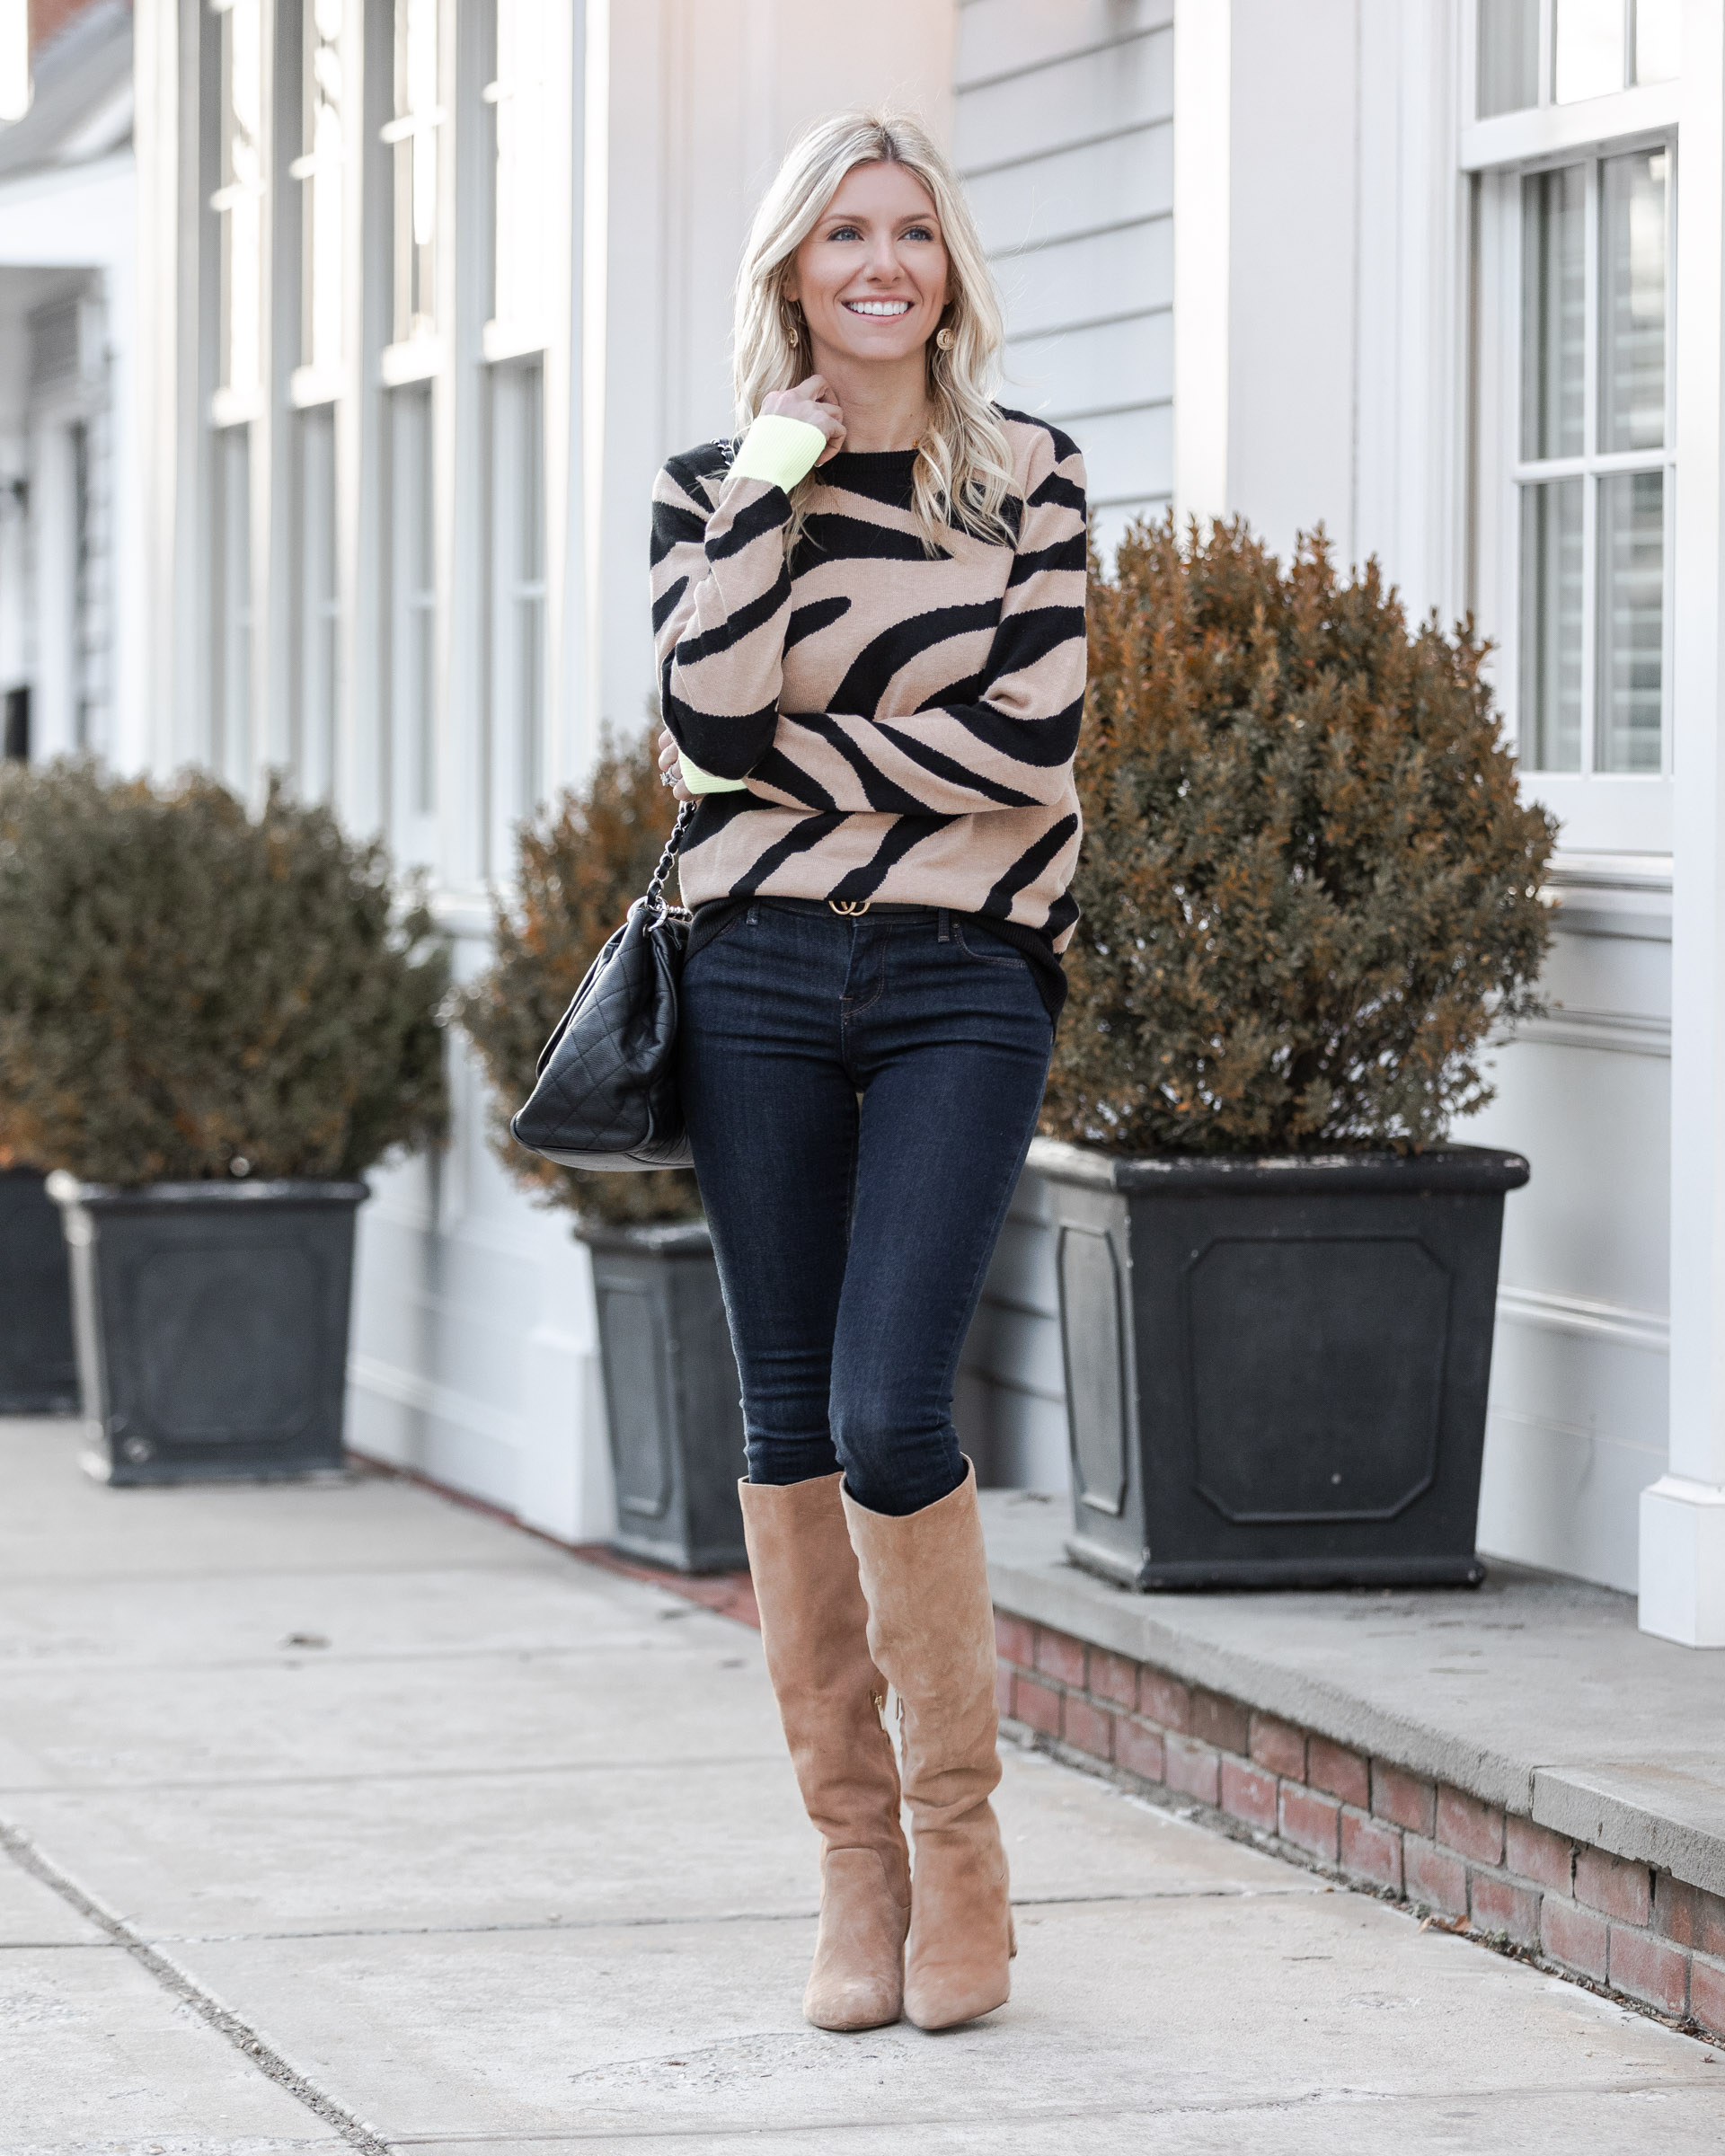 cozy-zebra-sweater-and-suede-boots-the-glamorous-gal